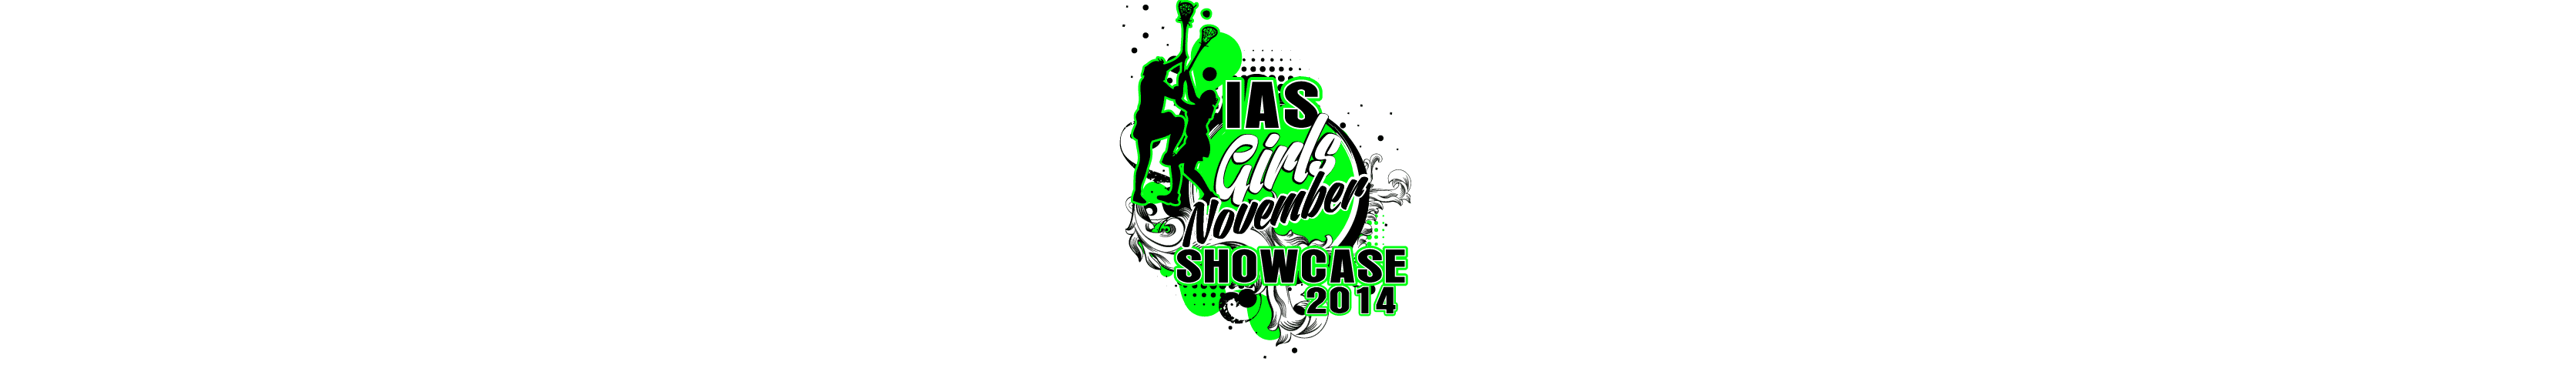 VECTOR LOGO DESIGN FOR PRINT IAS GIRLS SHOWCASE LACROSSE EVENT